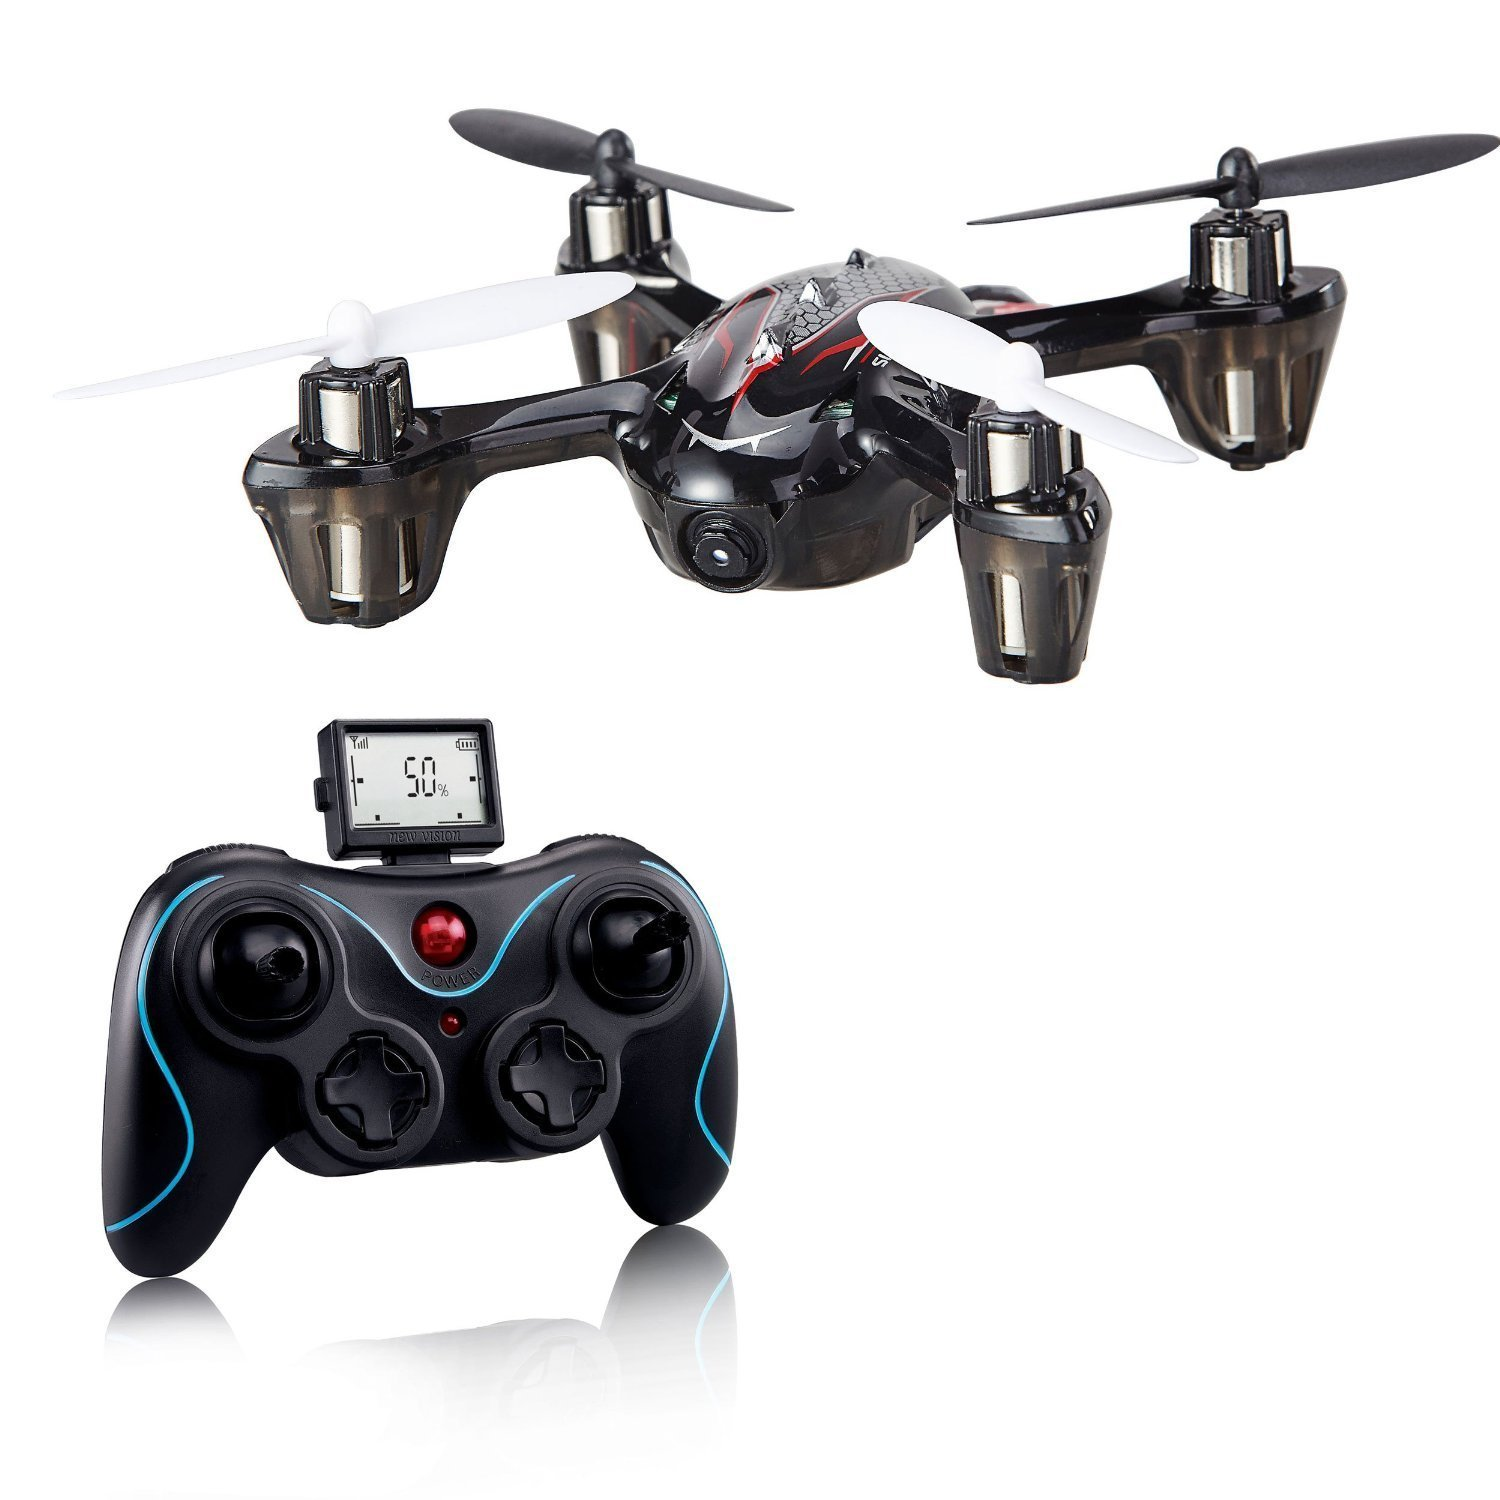 Drone With Camera: Amazon deals offer cheap drones with ...